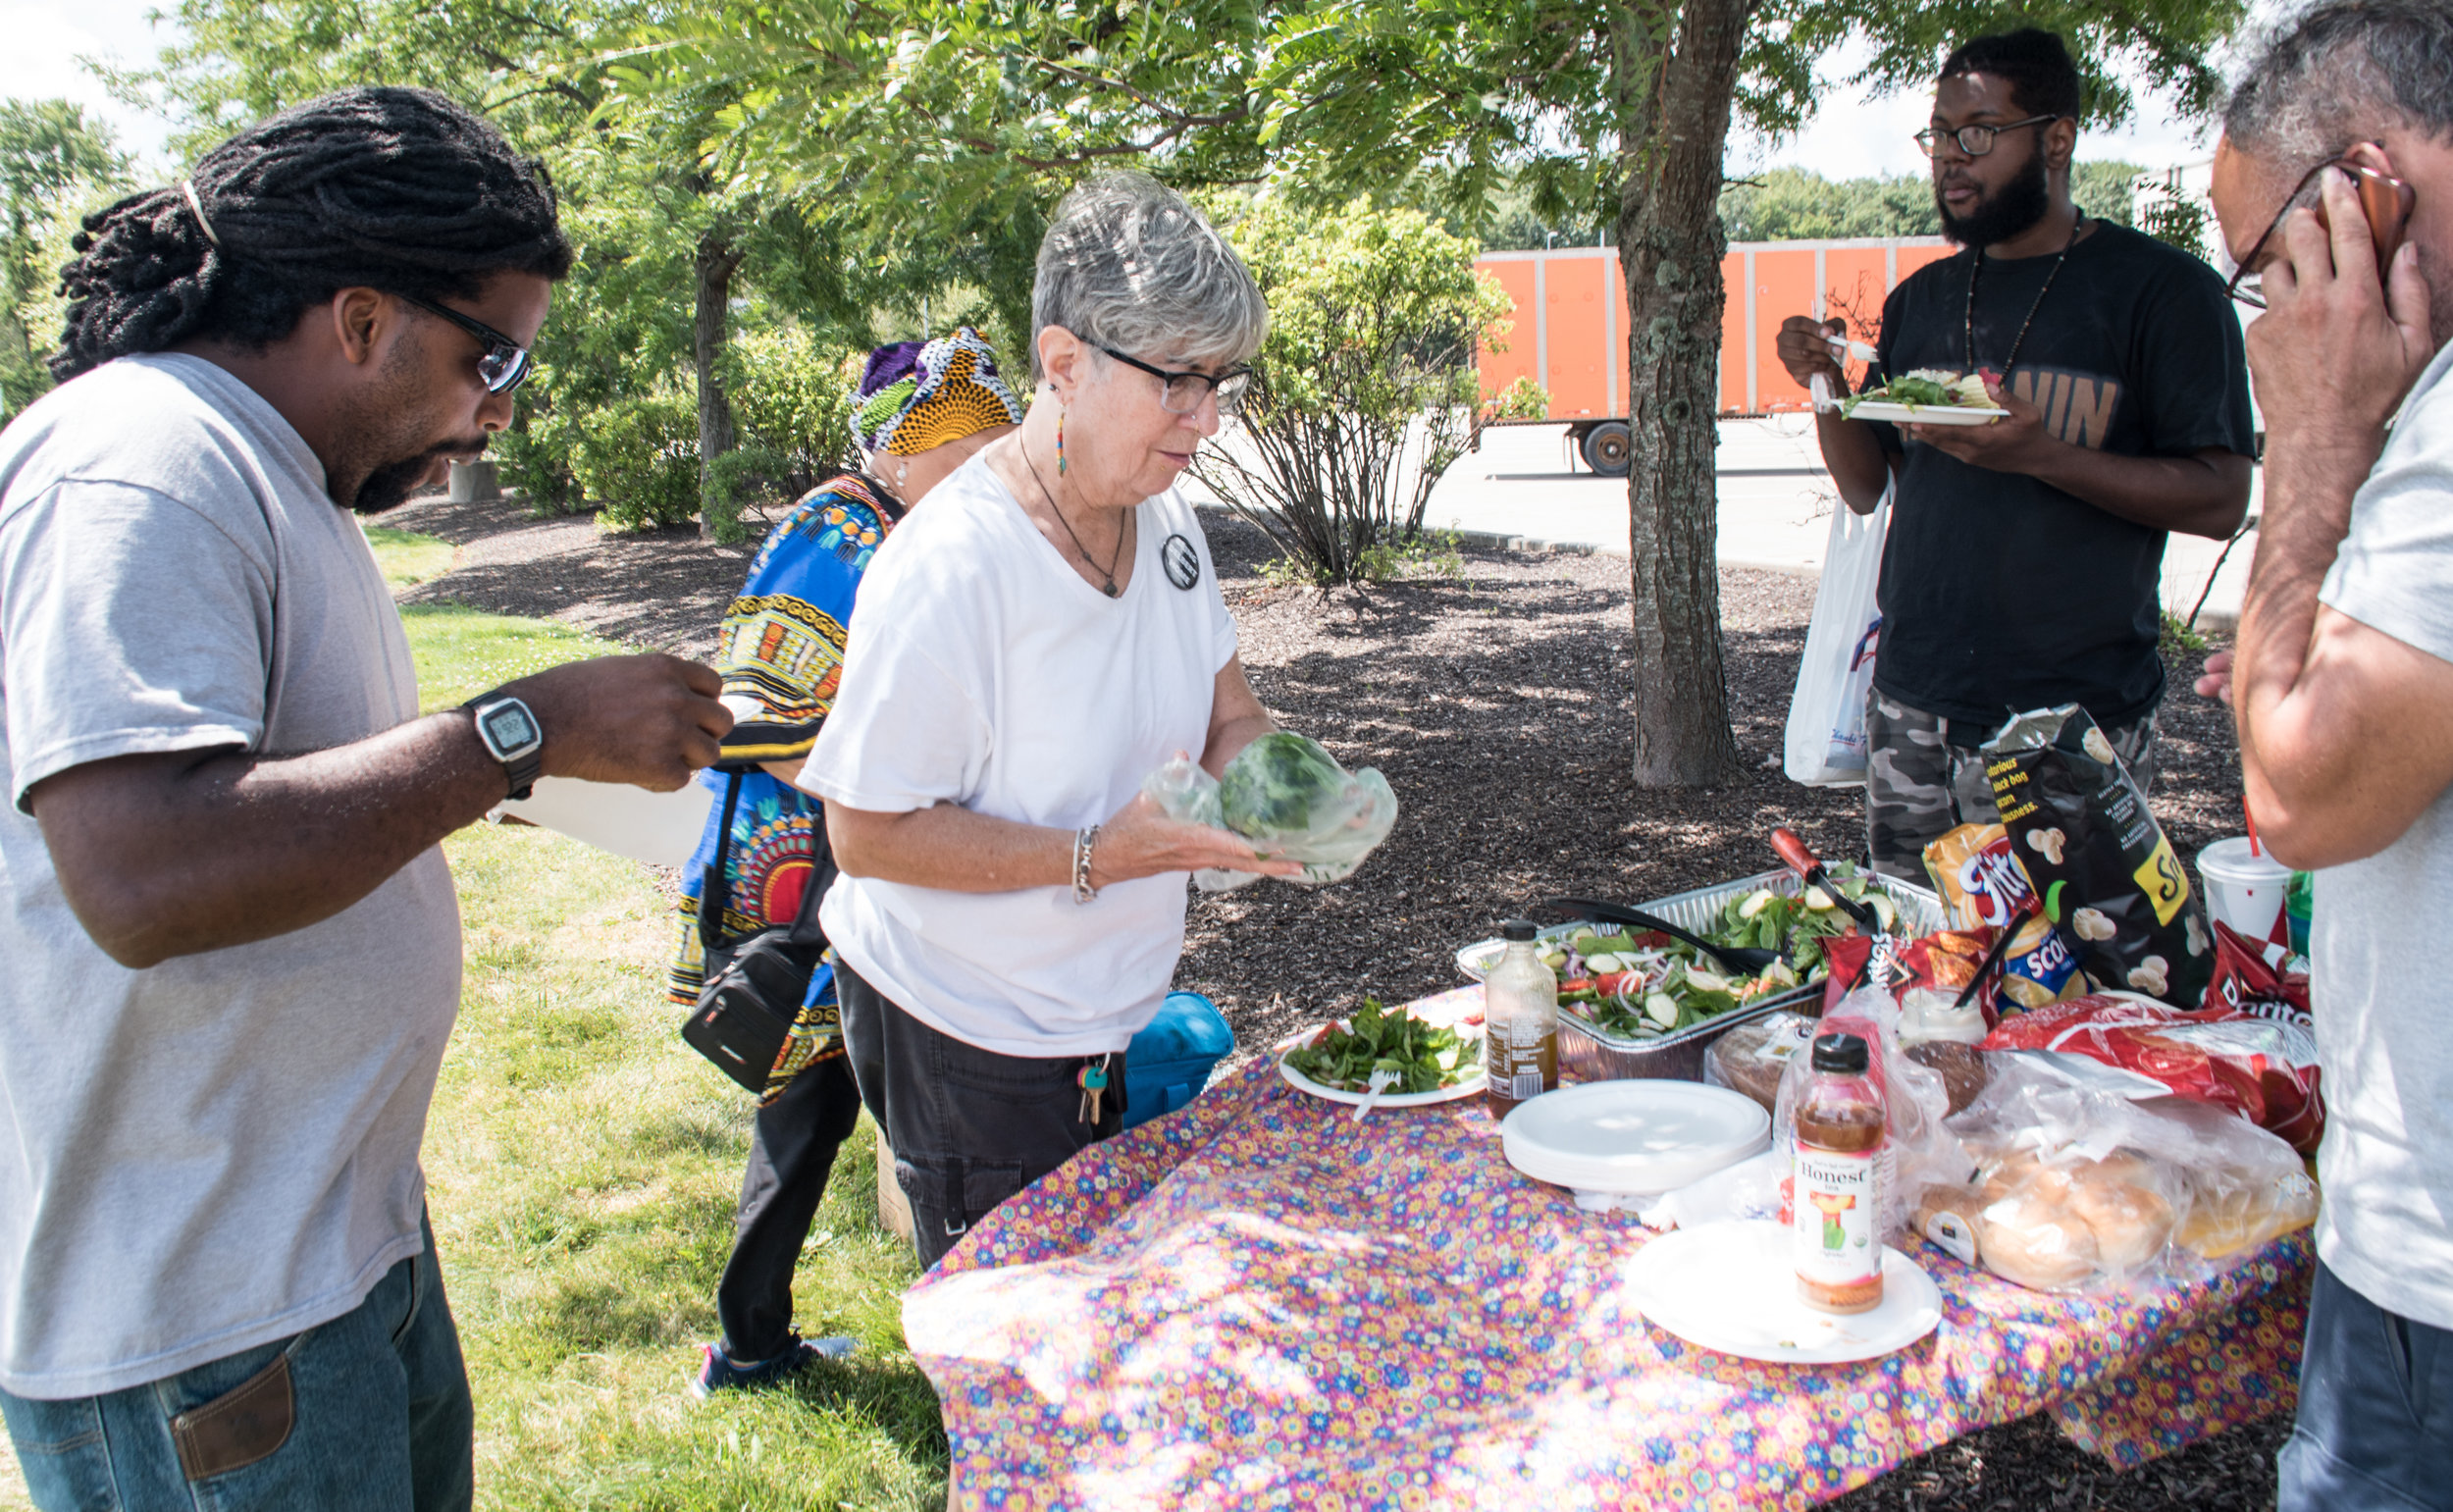 Food Not Bombs - Solidarity provided food. Aug 9, 2019. Photo: Joe Piette